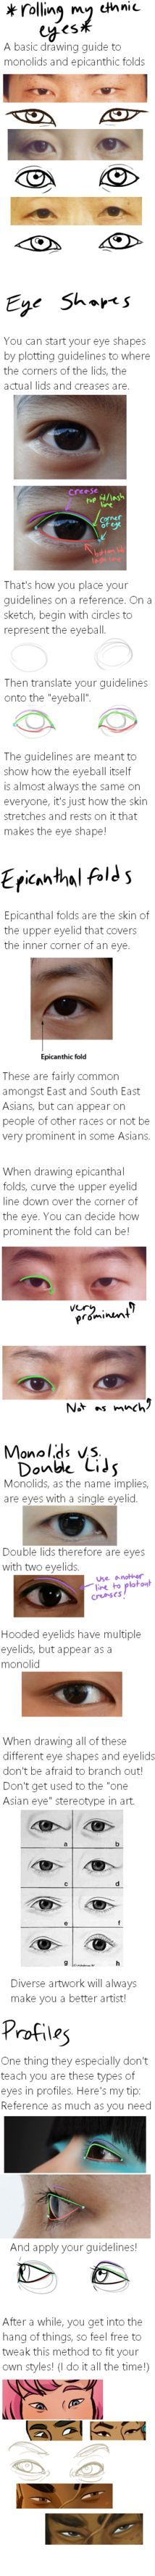 the all expansive 'asian' eye drawing guidei by CateTrippy